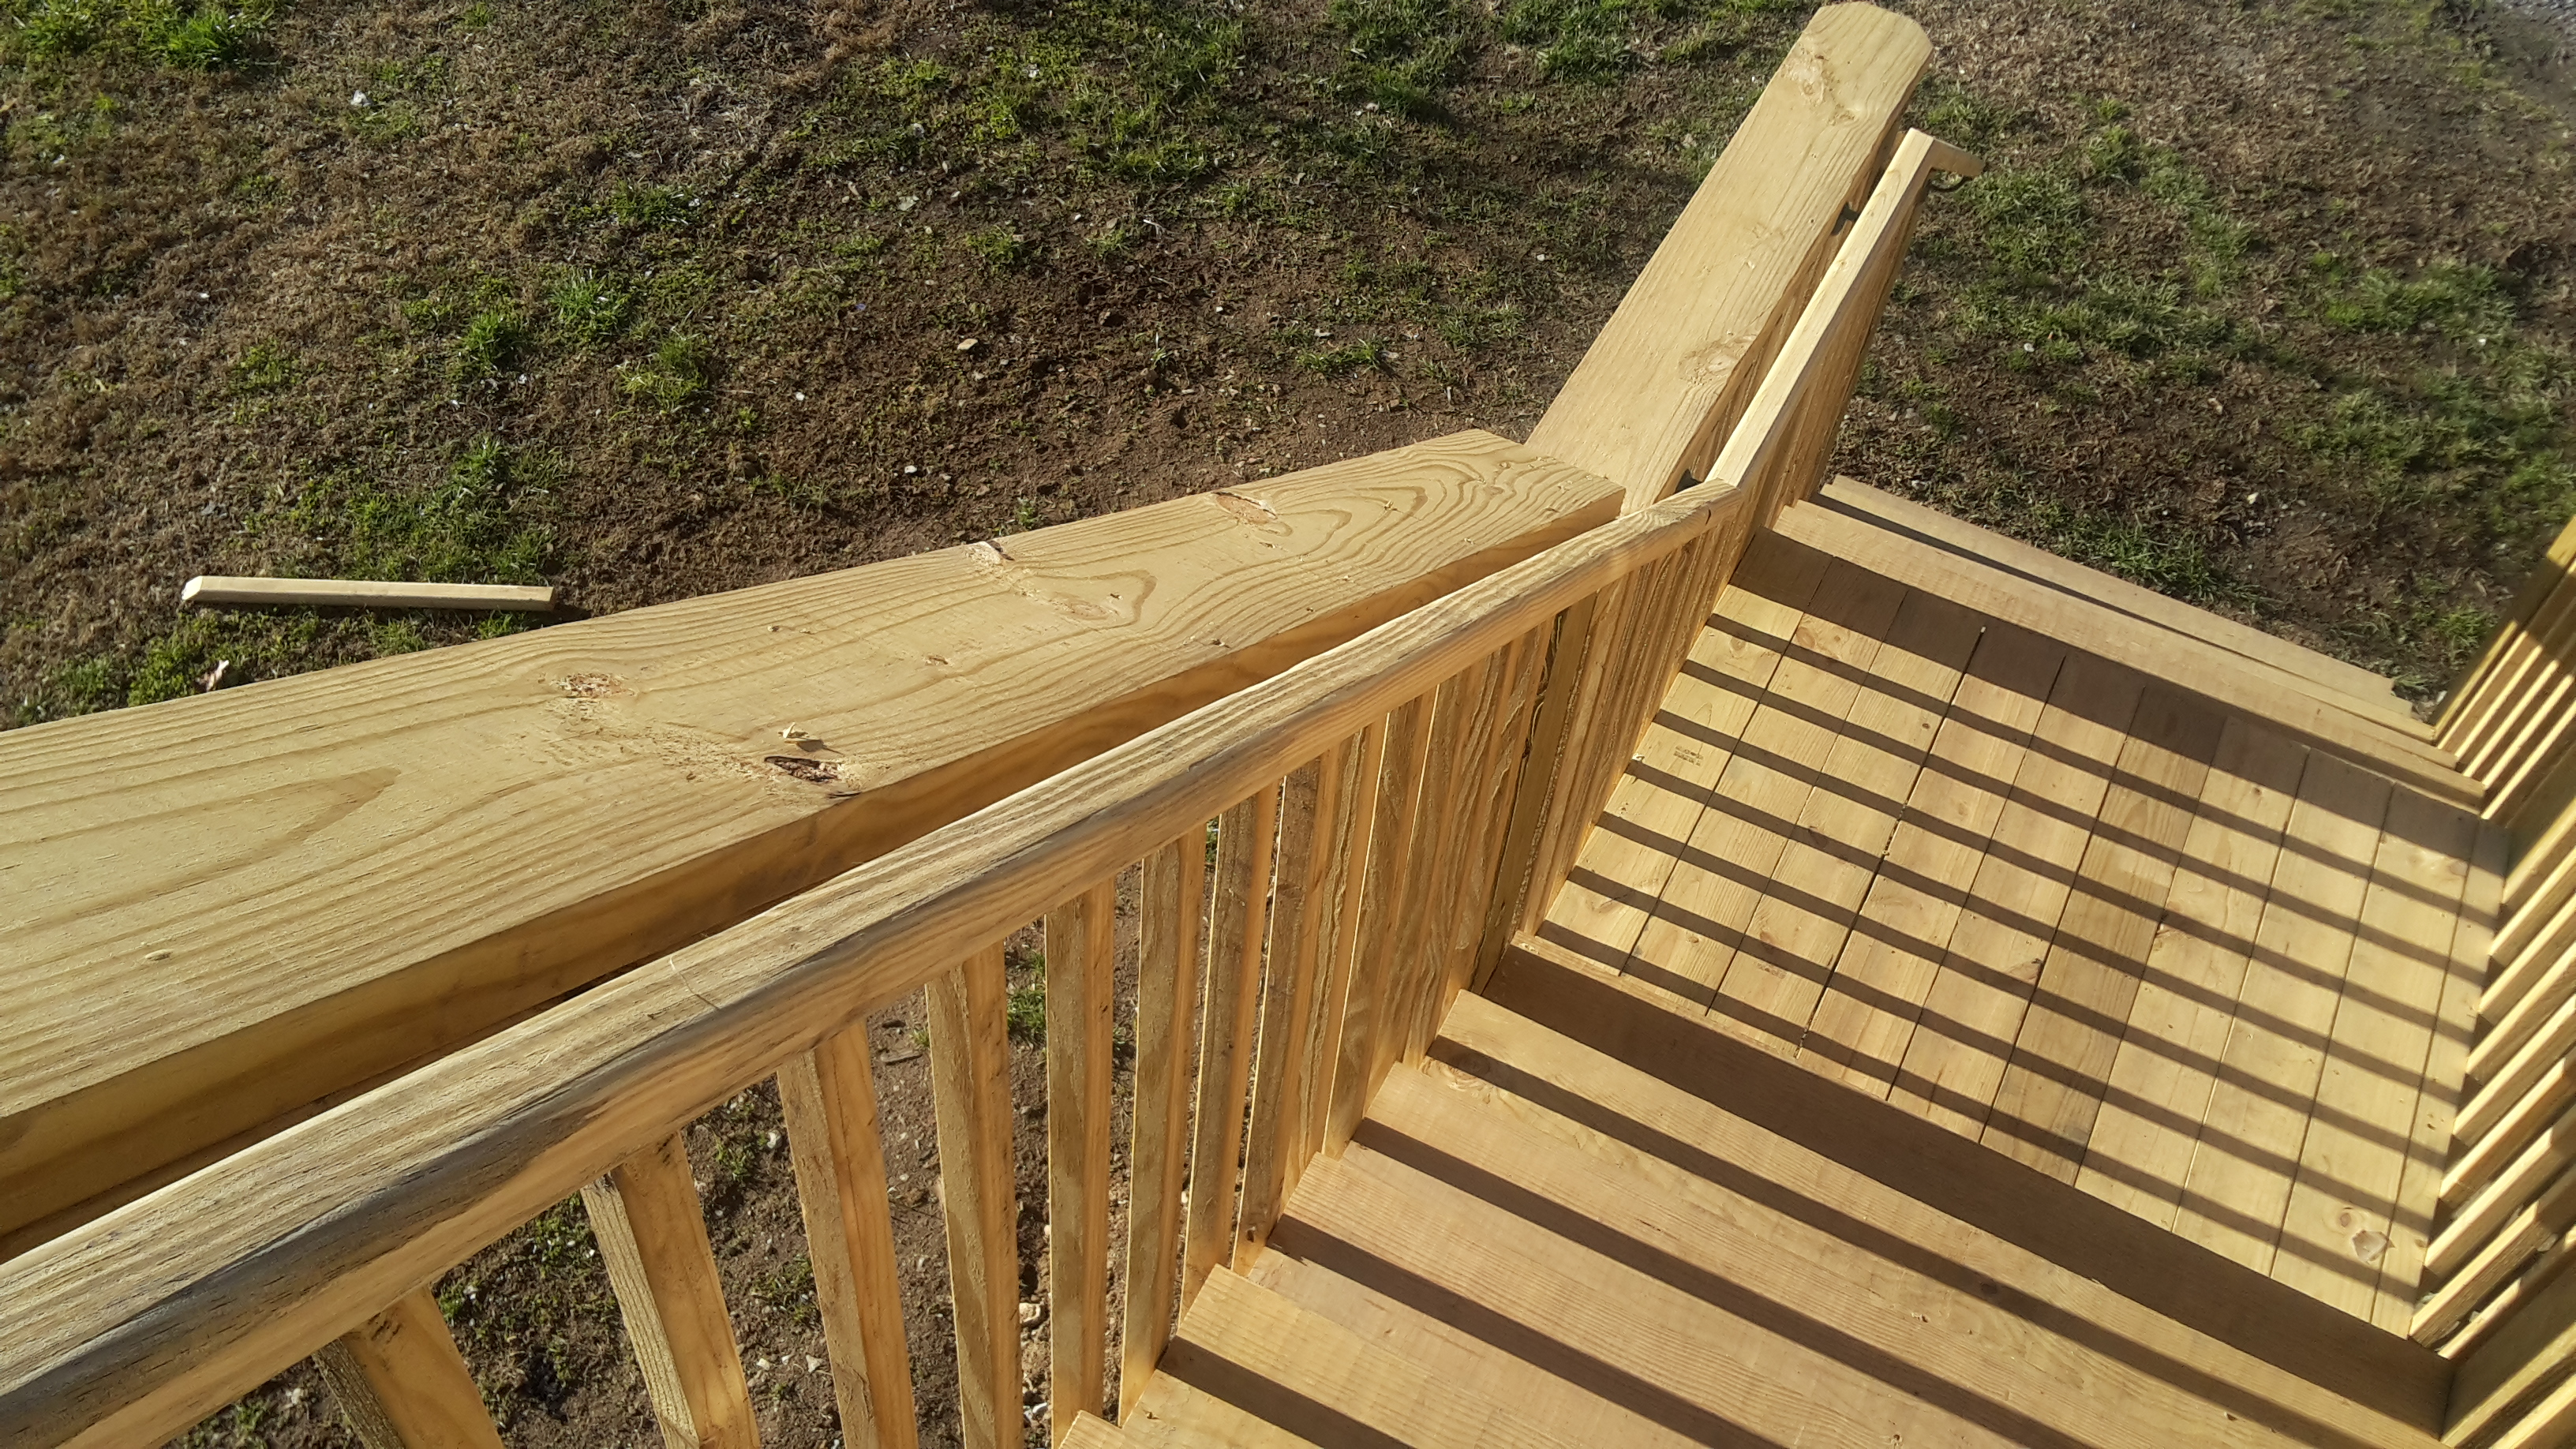 Stair Railing Height For Decks Ramps